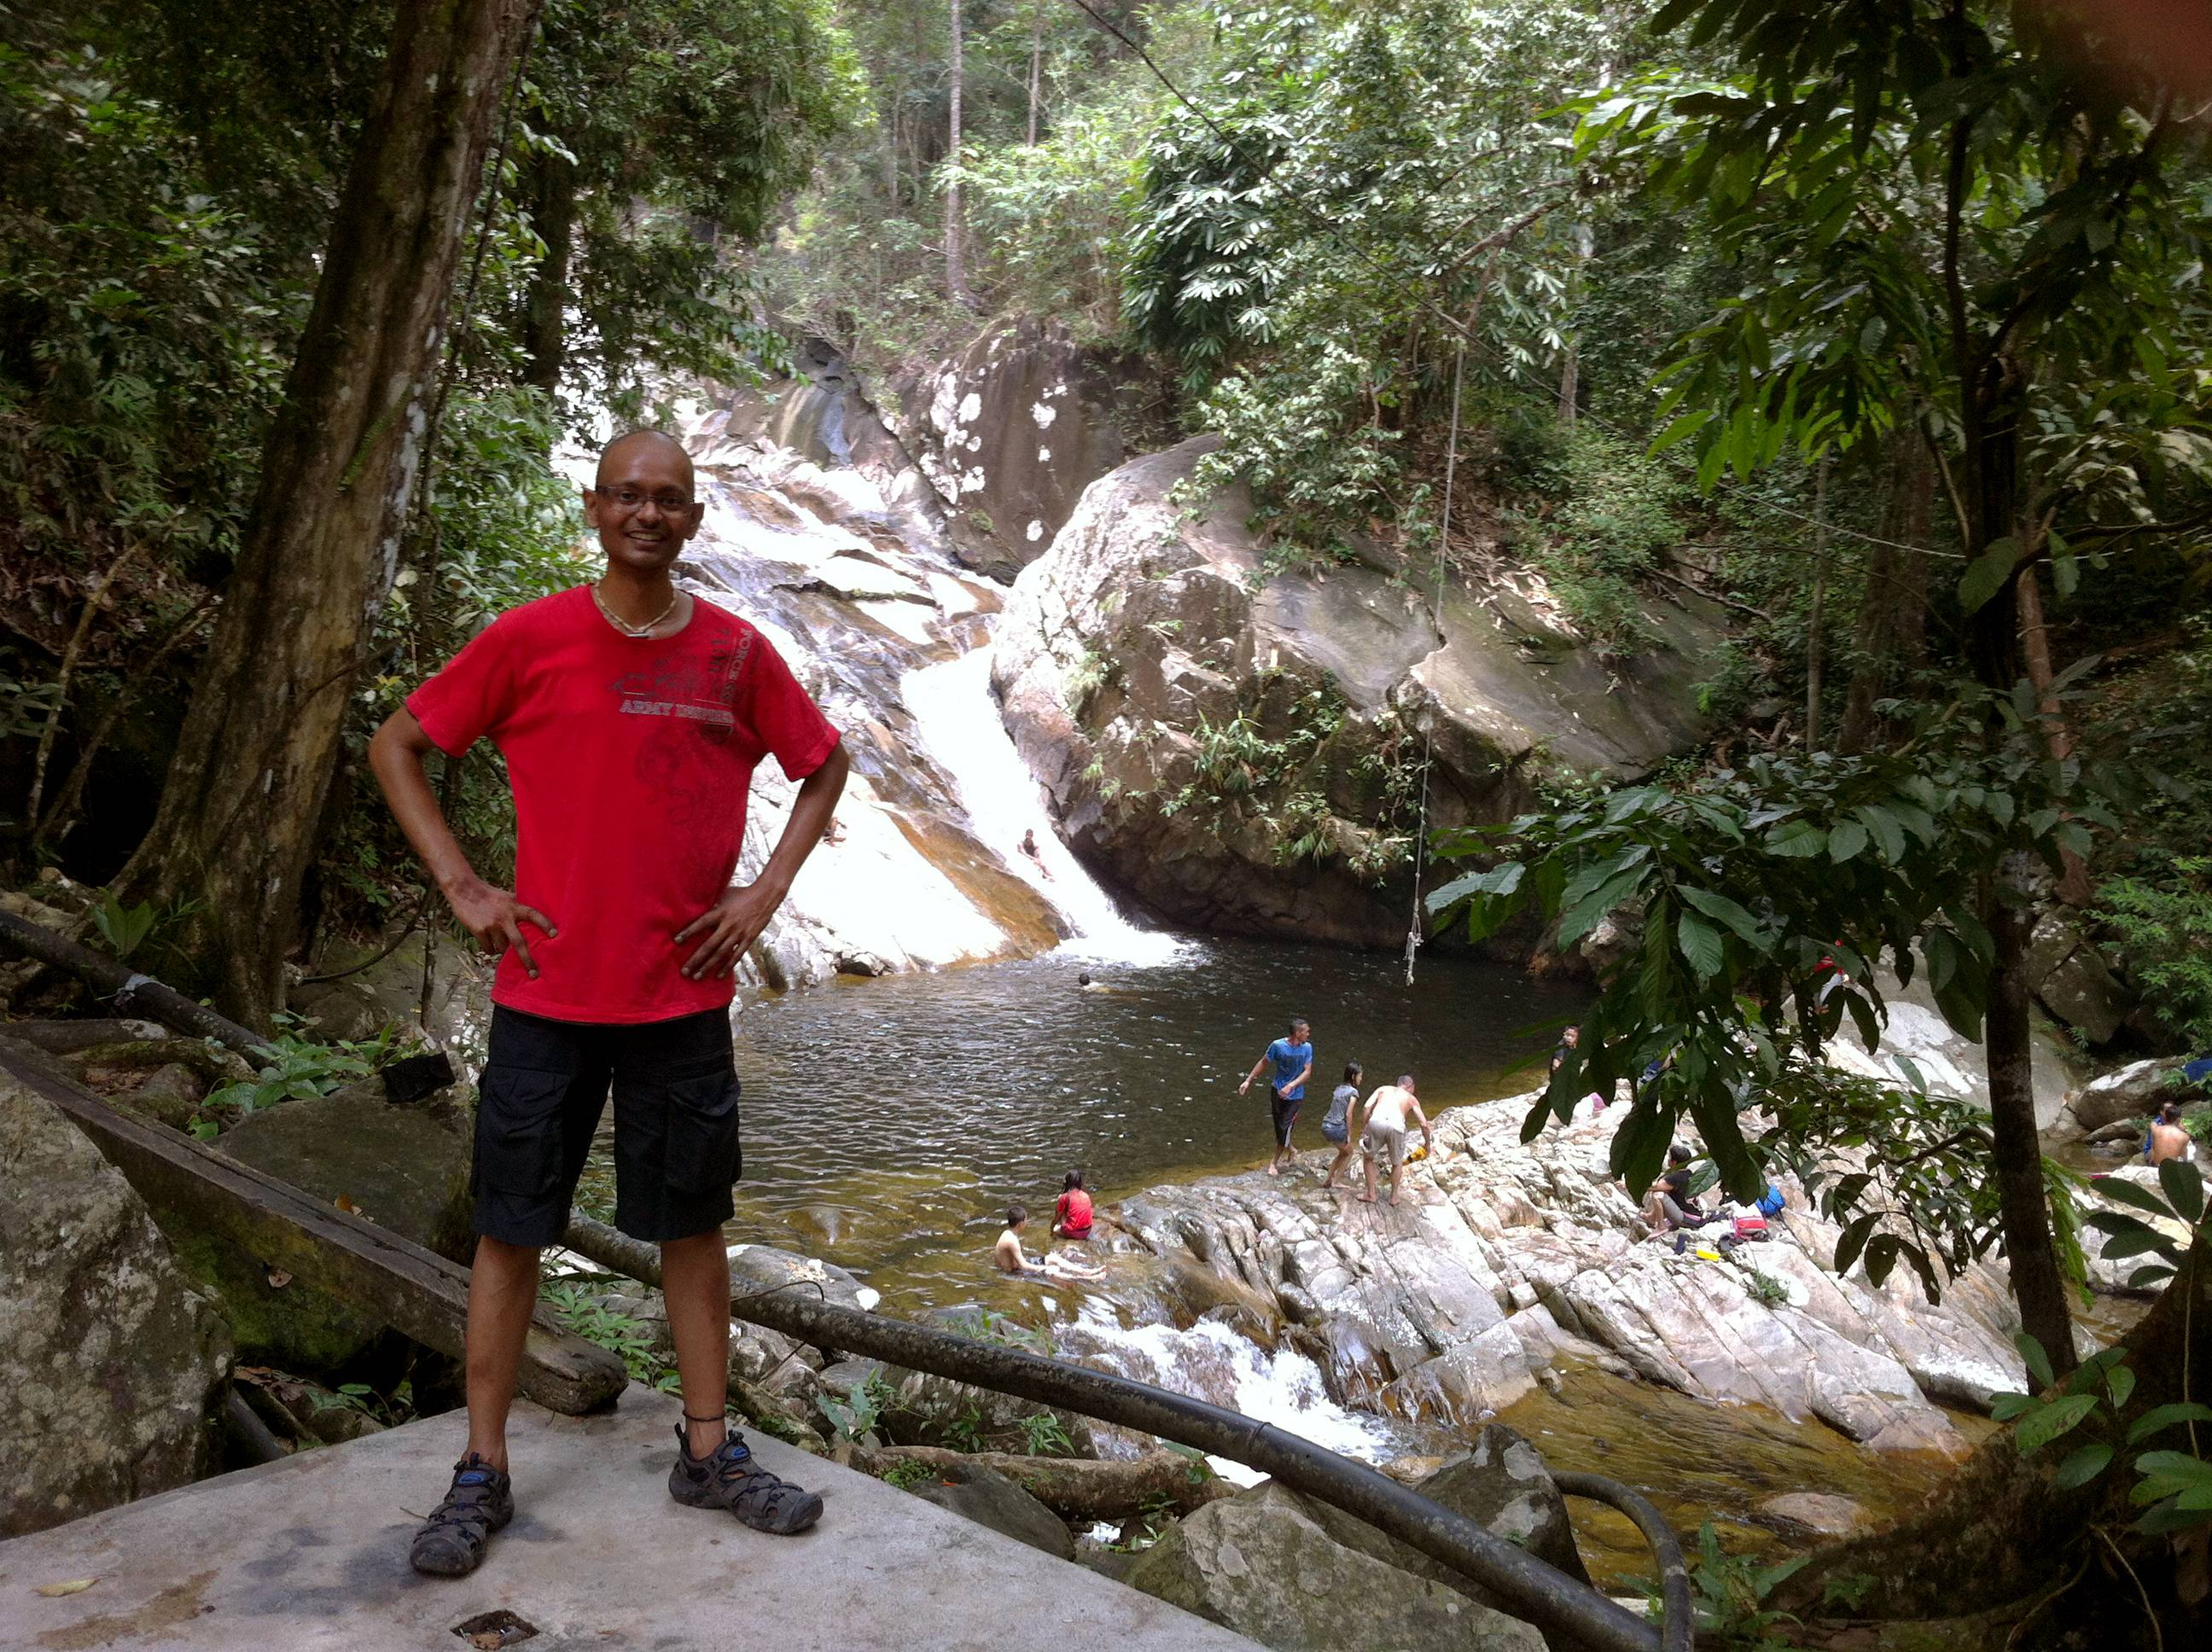 A photo of Surintan after he completed his chemotherapy treatment and started spending more time outdoors to regain his strength